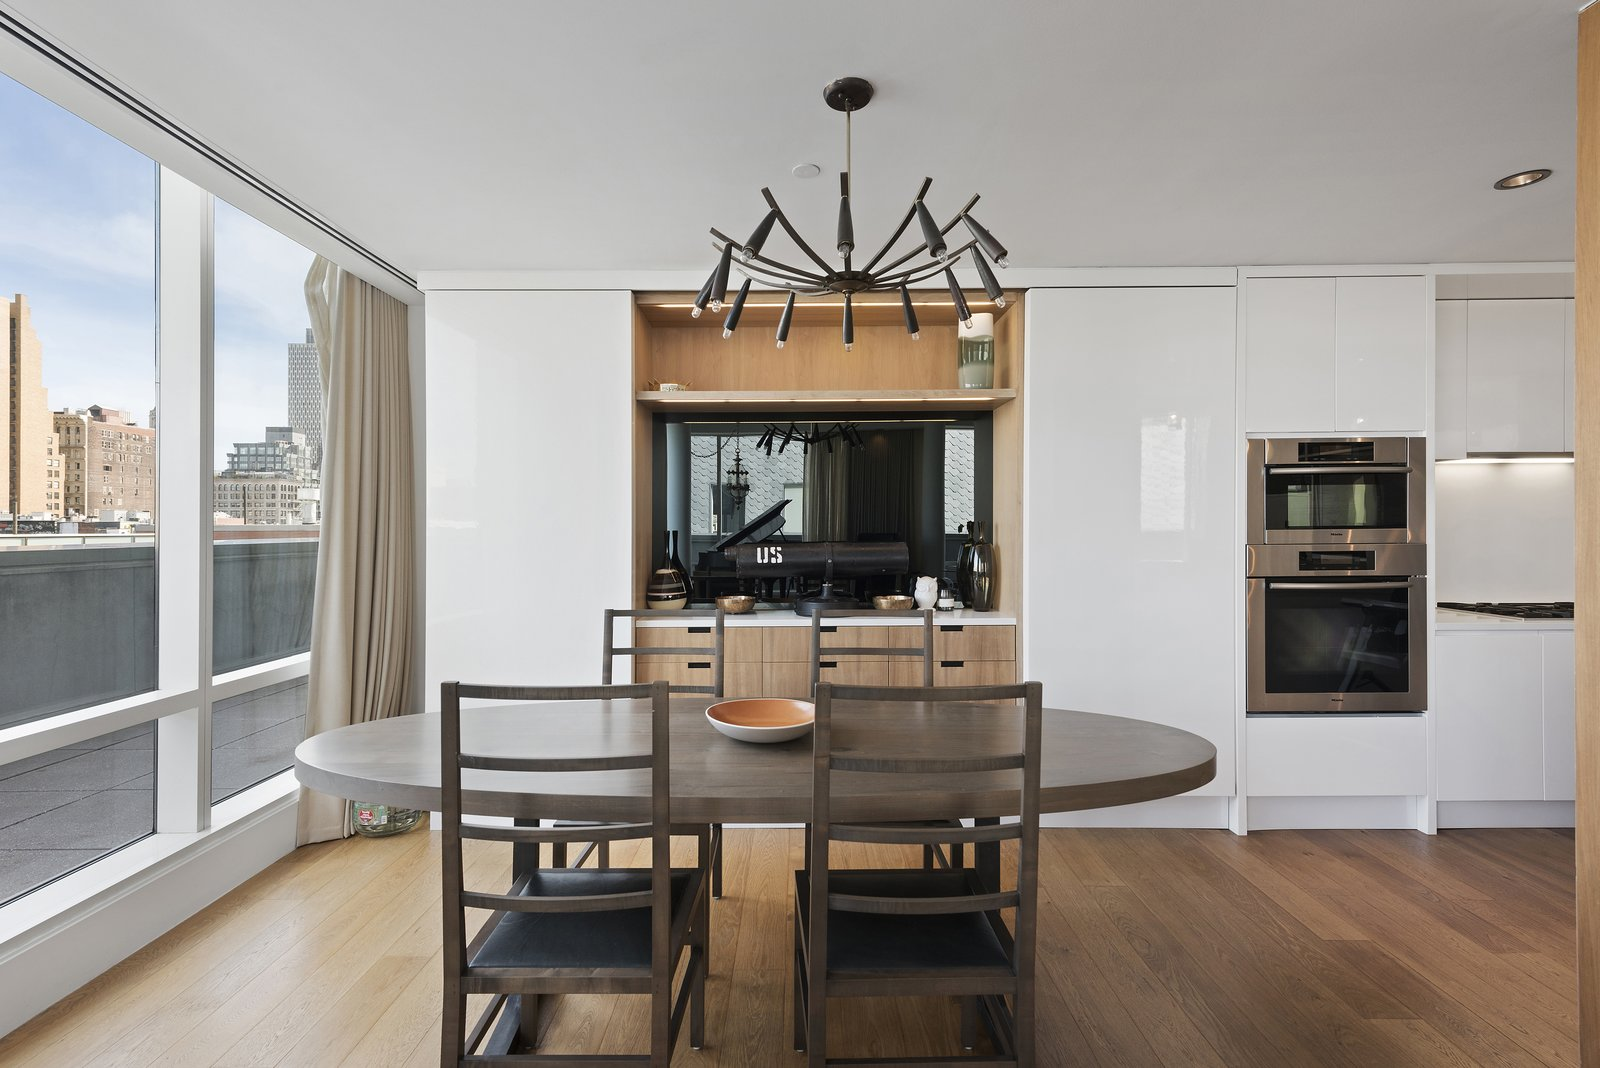 The living/dining area wraps around a central open kitchen and looks out on the wraparound terrace. The home features many state-of-the features such as a Creston electronic shade system throughout.